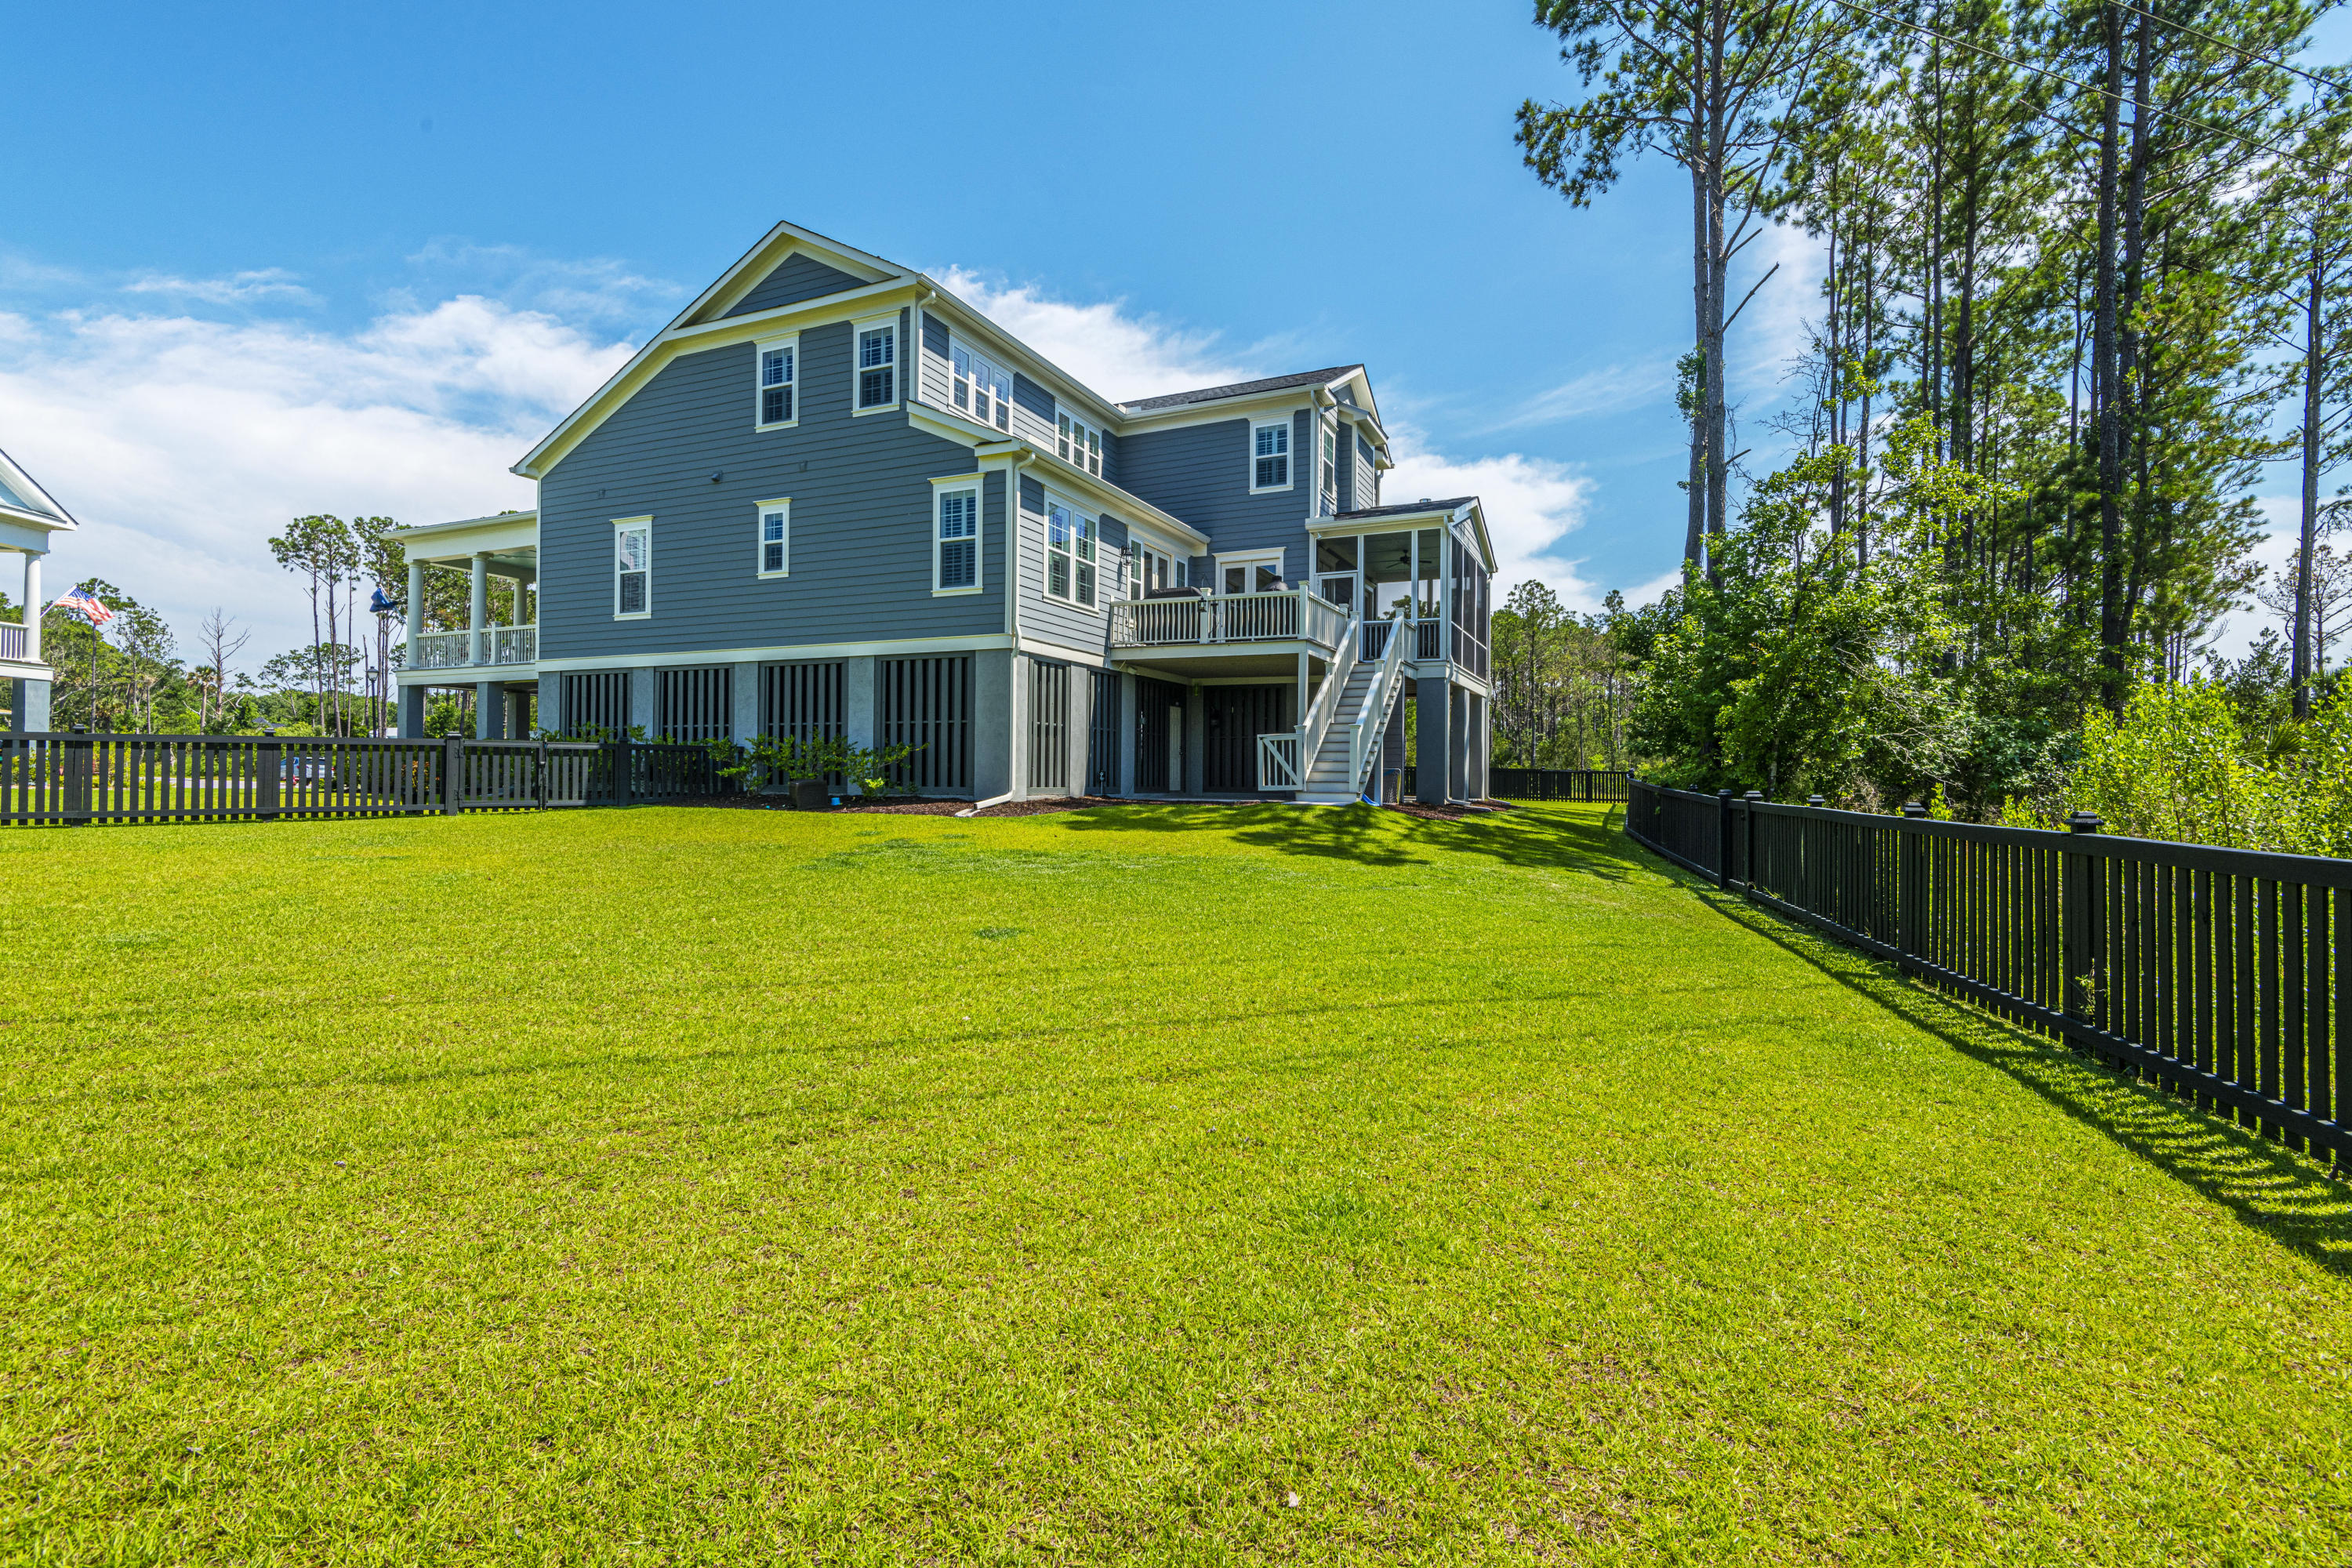 Stratton by the Sound Homes For Sale - 1204 Spottail, Mount Pleasant, SC - 68